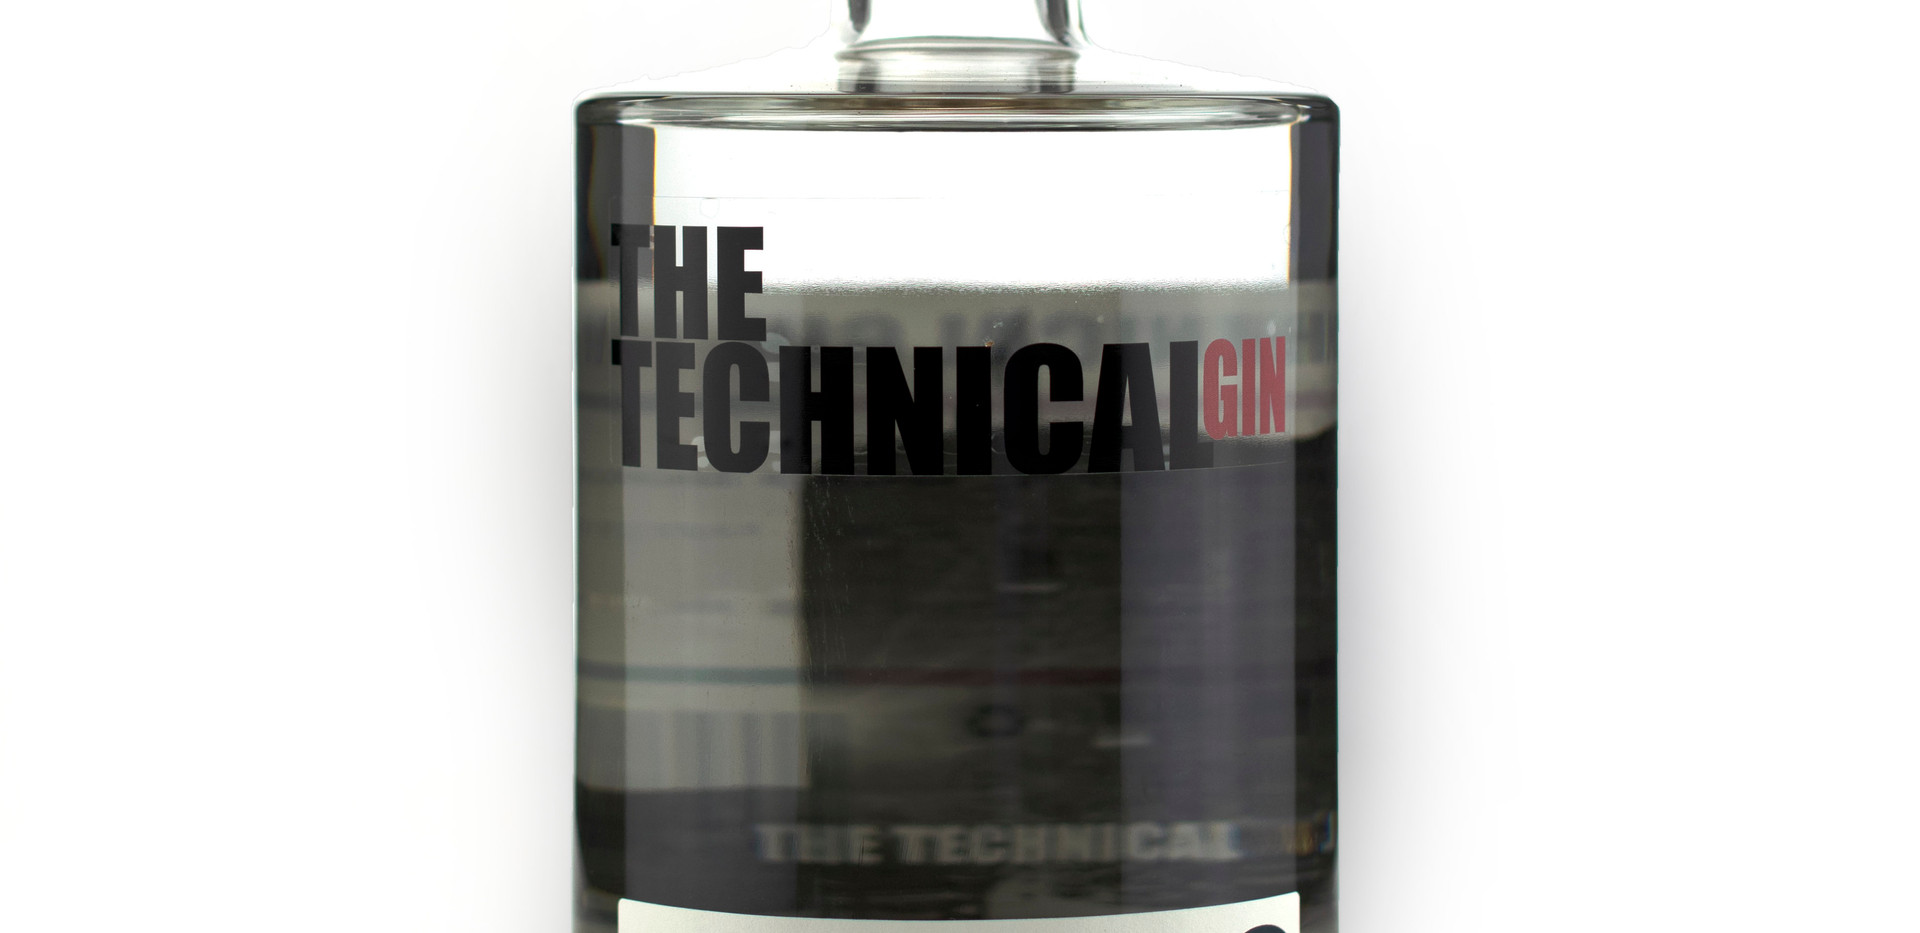 Technical Gin White image.jpg